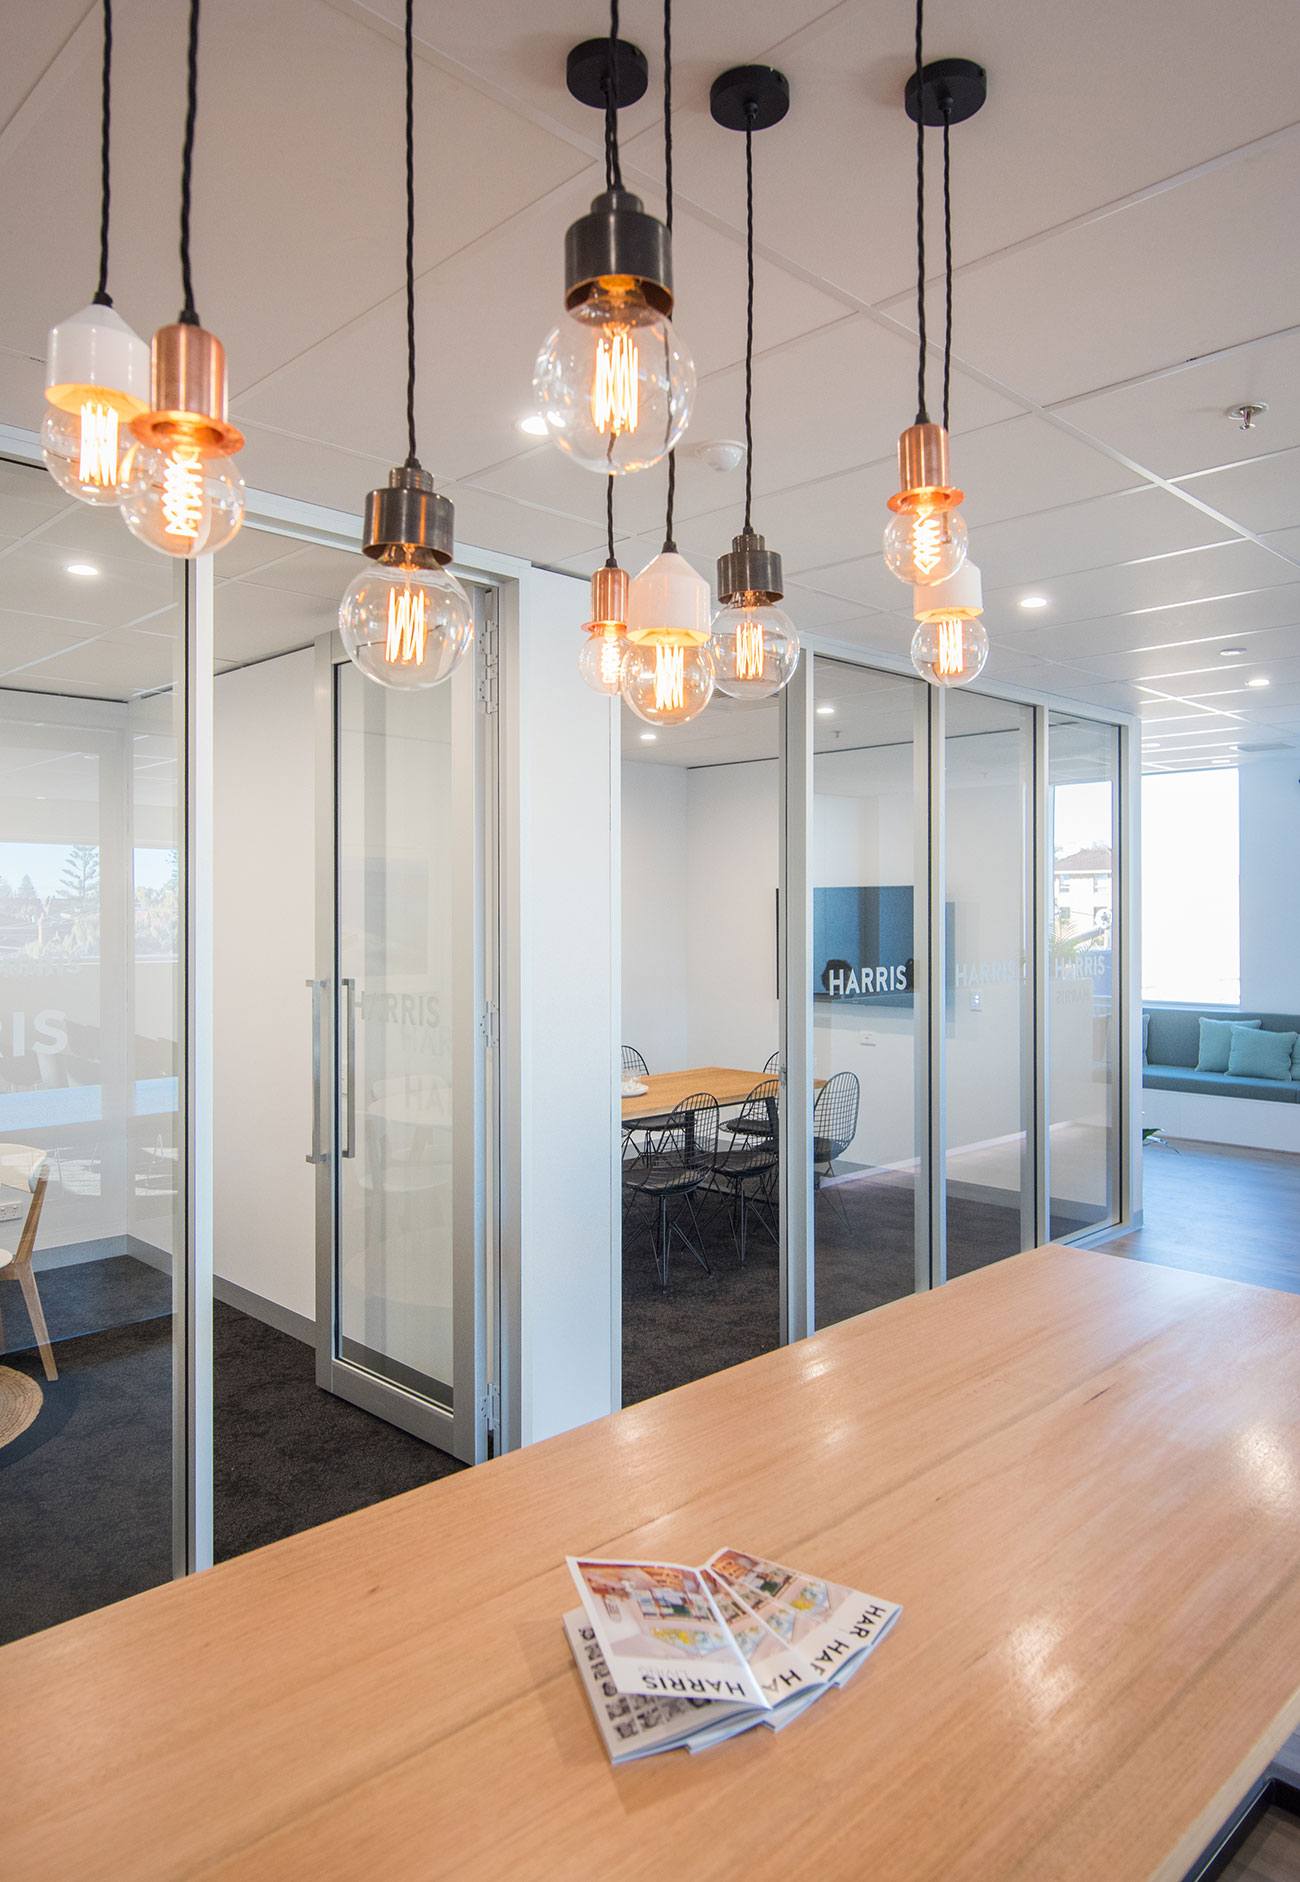 Chappell Builders - Harris Glenelg Office Fit Out